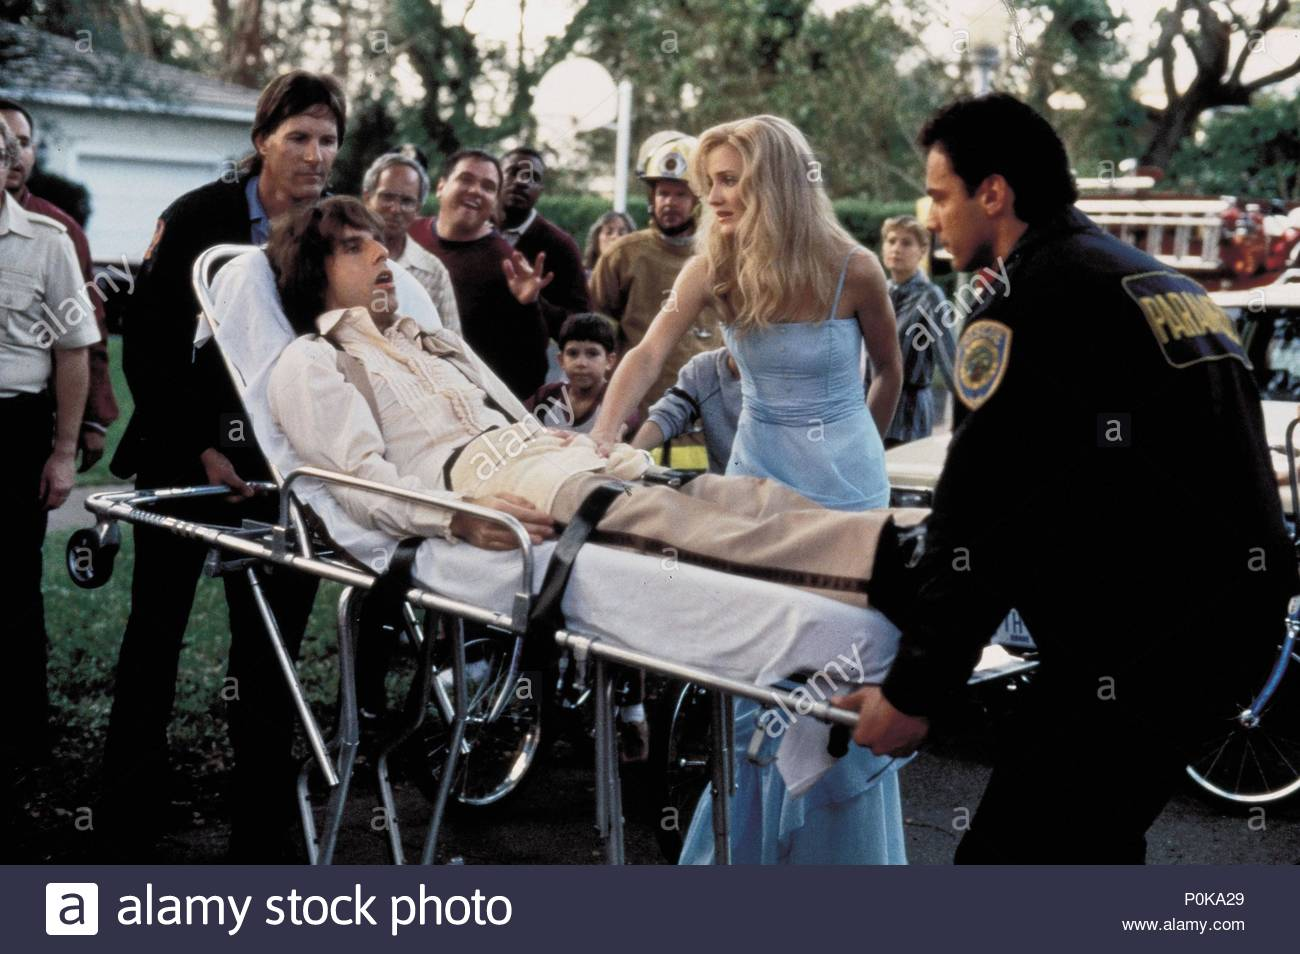 Original Film Title: THERE'S SOMETHING ABOUT MARY.  English Title: THERE'S SOMETHING ABOUT MARY.  Film Director: BOBBY & PETER FARRELLY; BOBBY FARRELLY; PETER FARRELLY.  Year: 1998.  Stars: CAMERON DIAZ; BEN STILLER. Credit: 20TH CENTURY FOX / WATSON, GLEN / Album - Stock Image